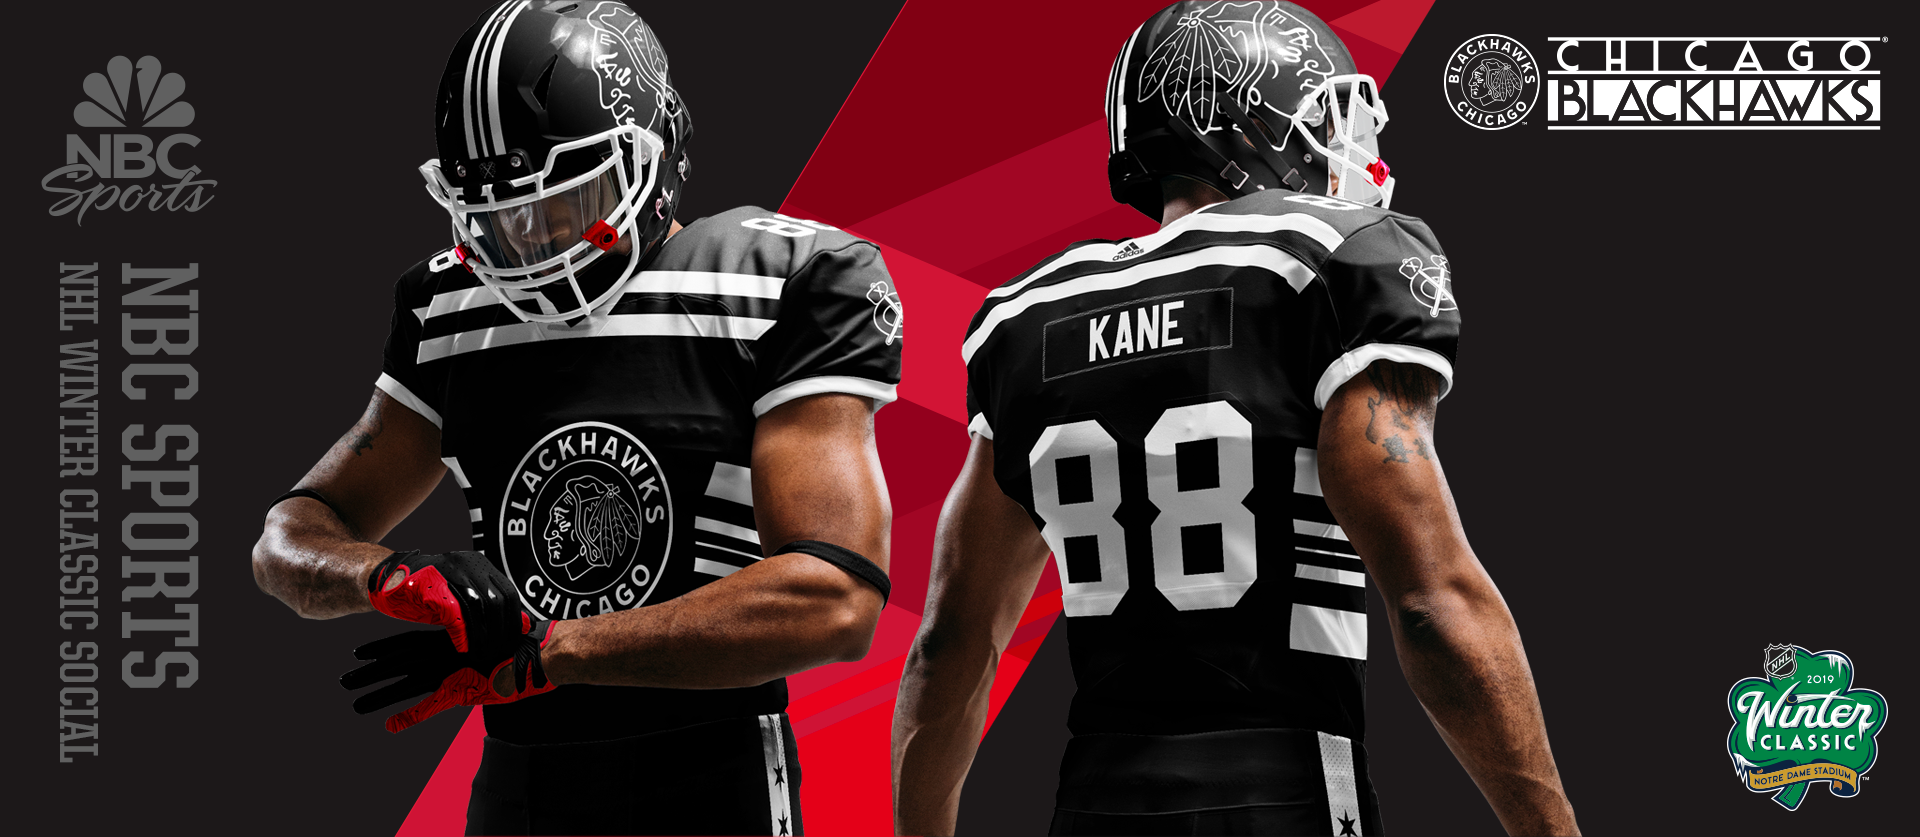 NHL Winter Classic - Chicago Football Uniforms Zoomed